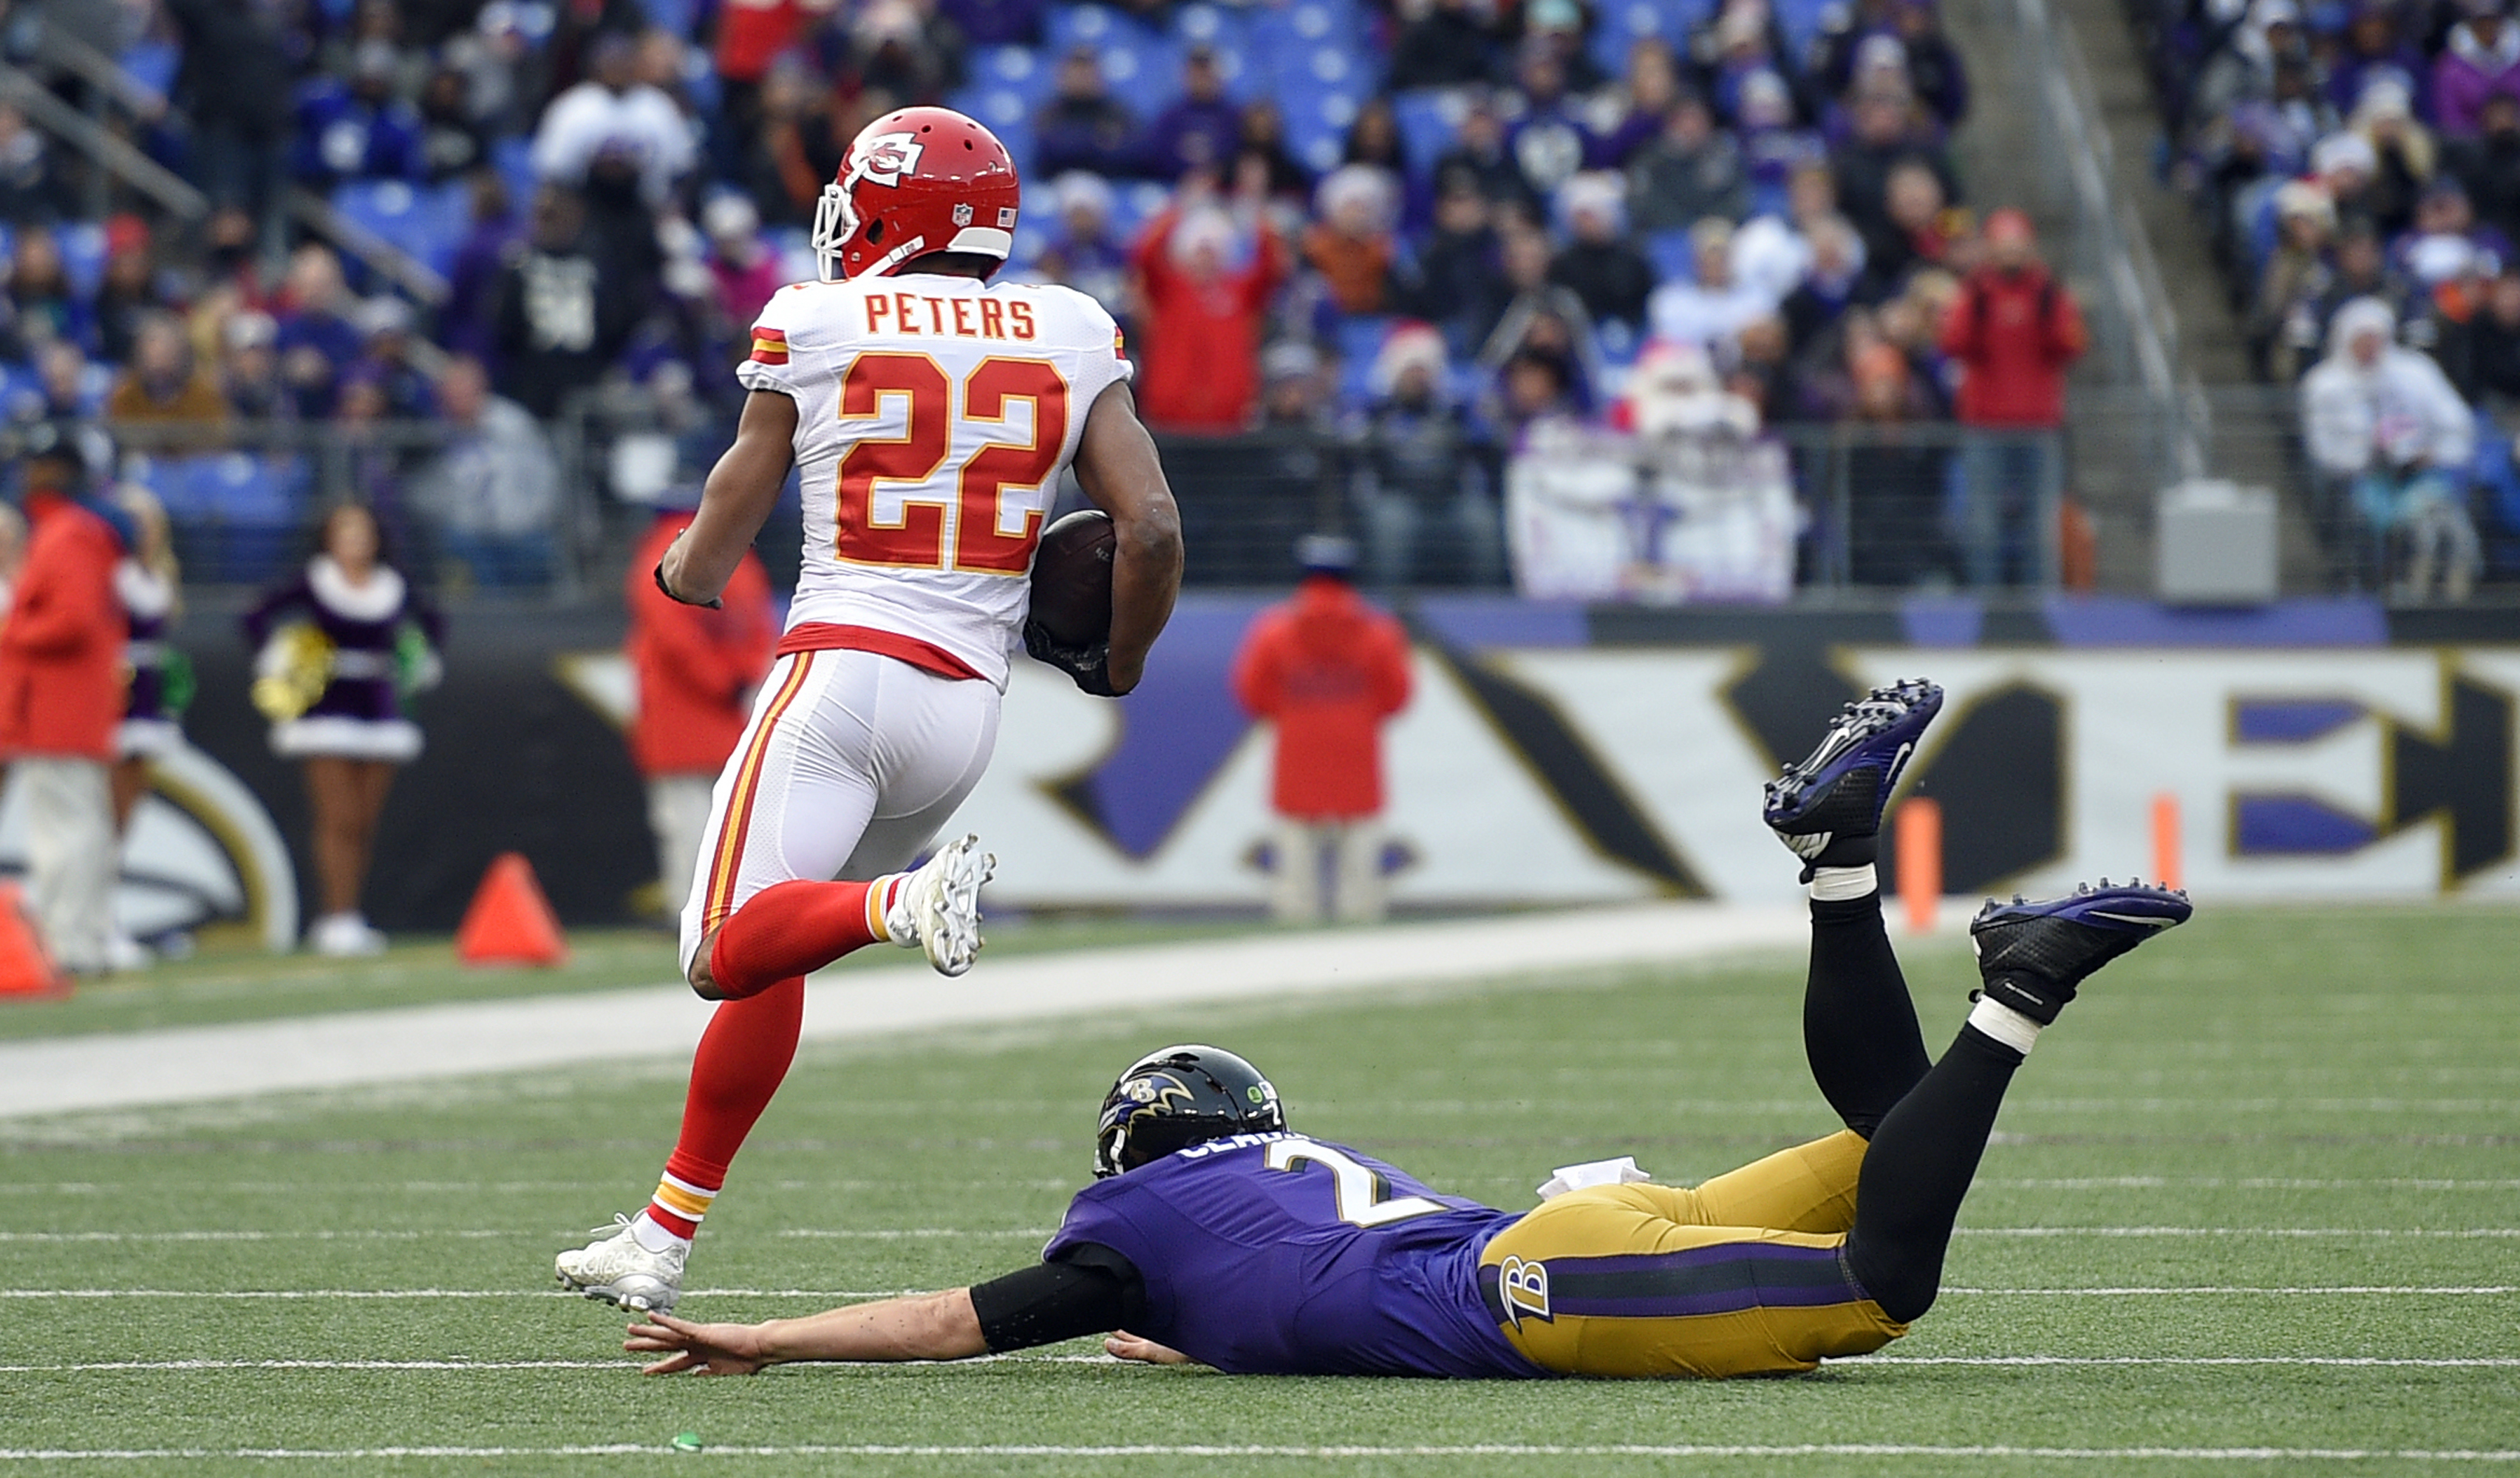 Kansas City Chiefs cornerback Marcus Peters (22) runs past Baltimore Ravens quarterback Jimmy Clausen after intercepting Clausen's pass for a touchdown in the second half of an NFL football game, Sunday, Dec. 20, 2015, in Baltimore. (AP Photo/Nick Wass)